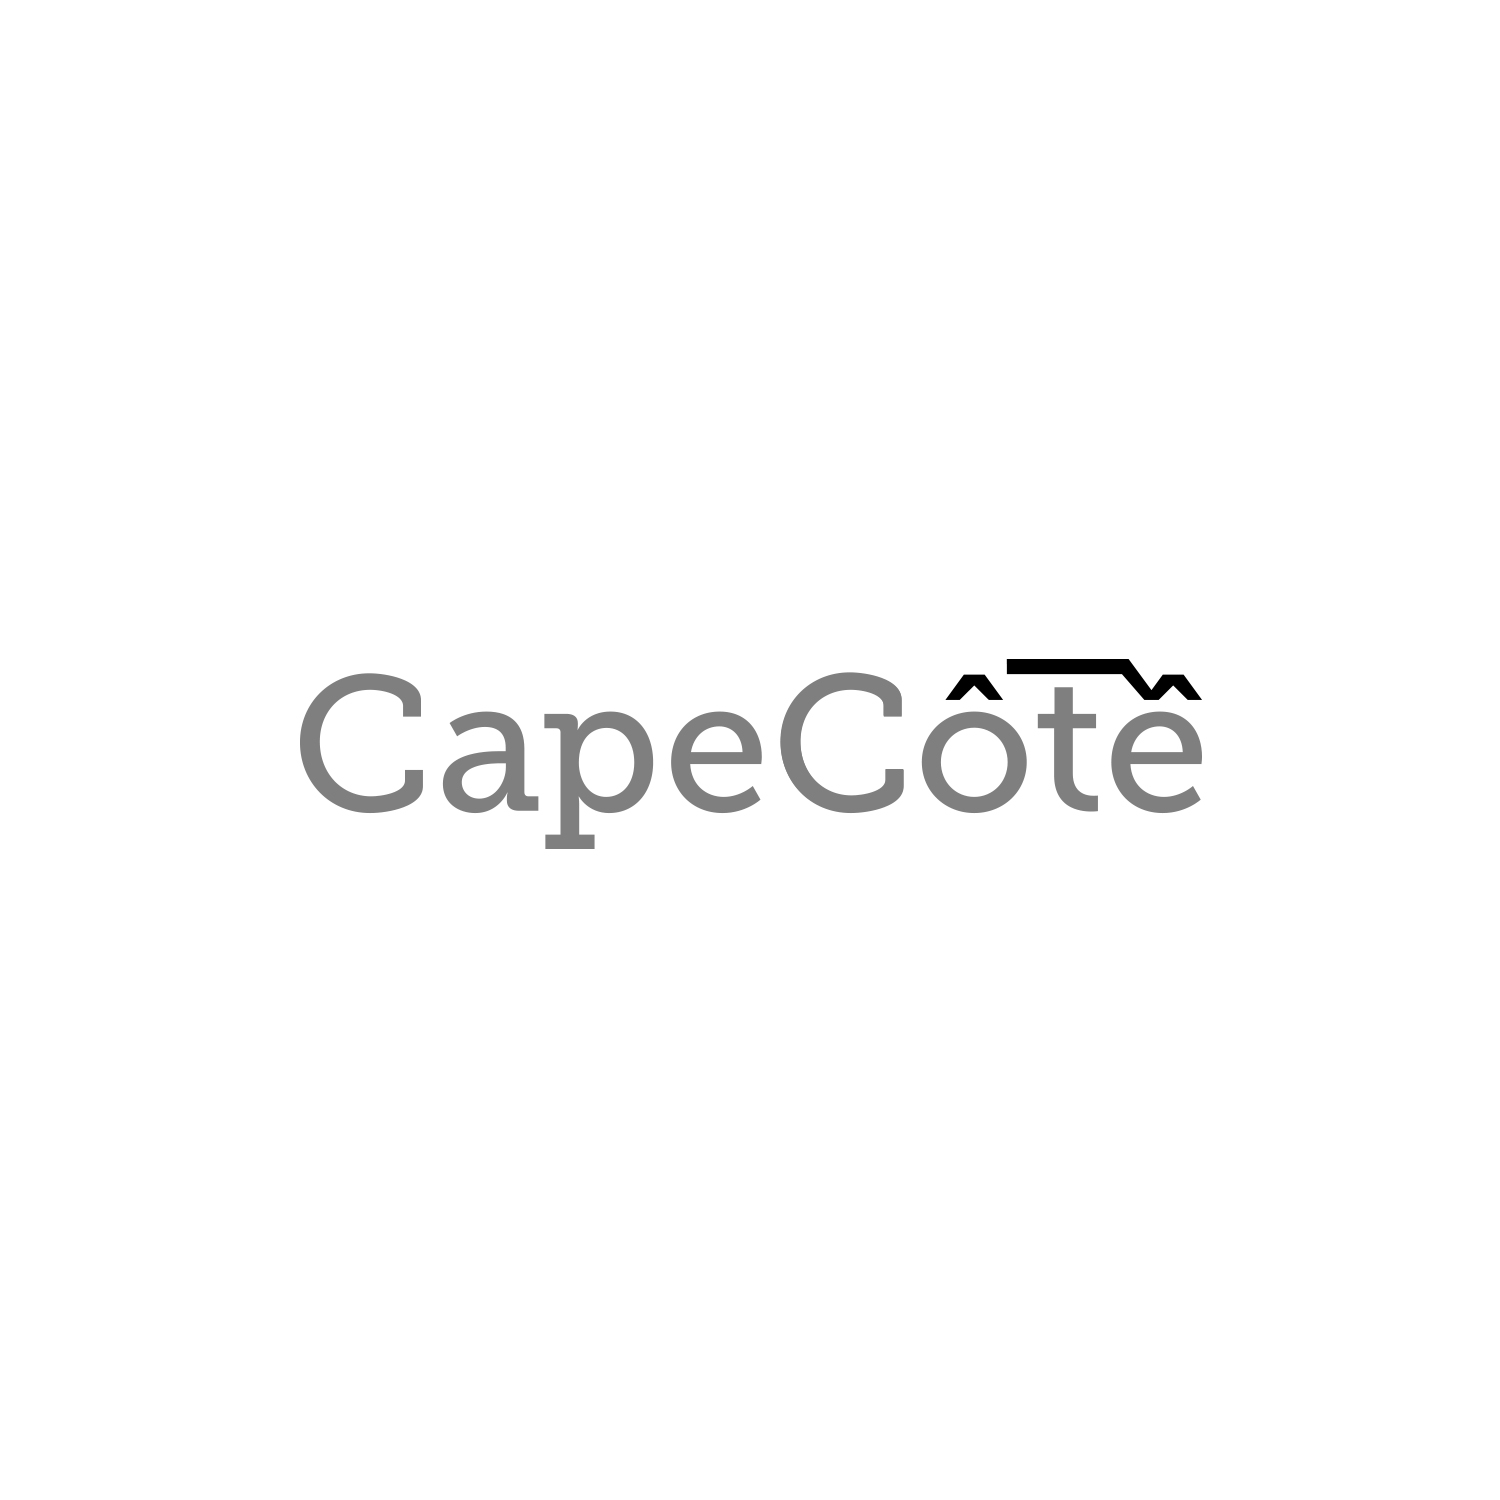 The circumflex accent becomes an element of the Table Top Mountain –a distinctive feature of Cape Town, where this clothing company is based.